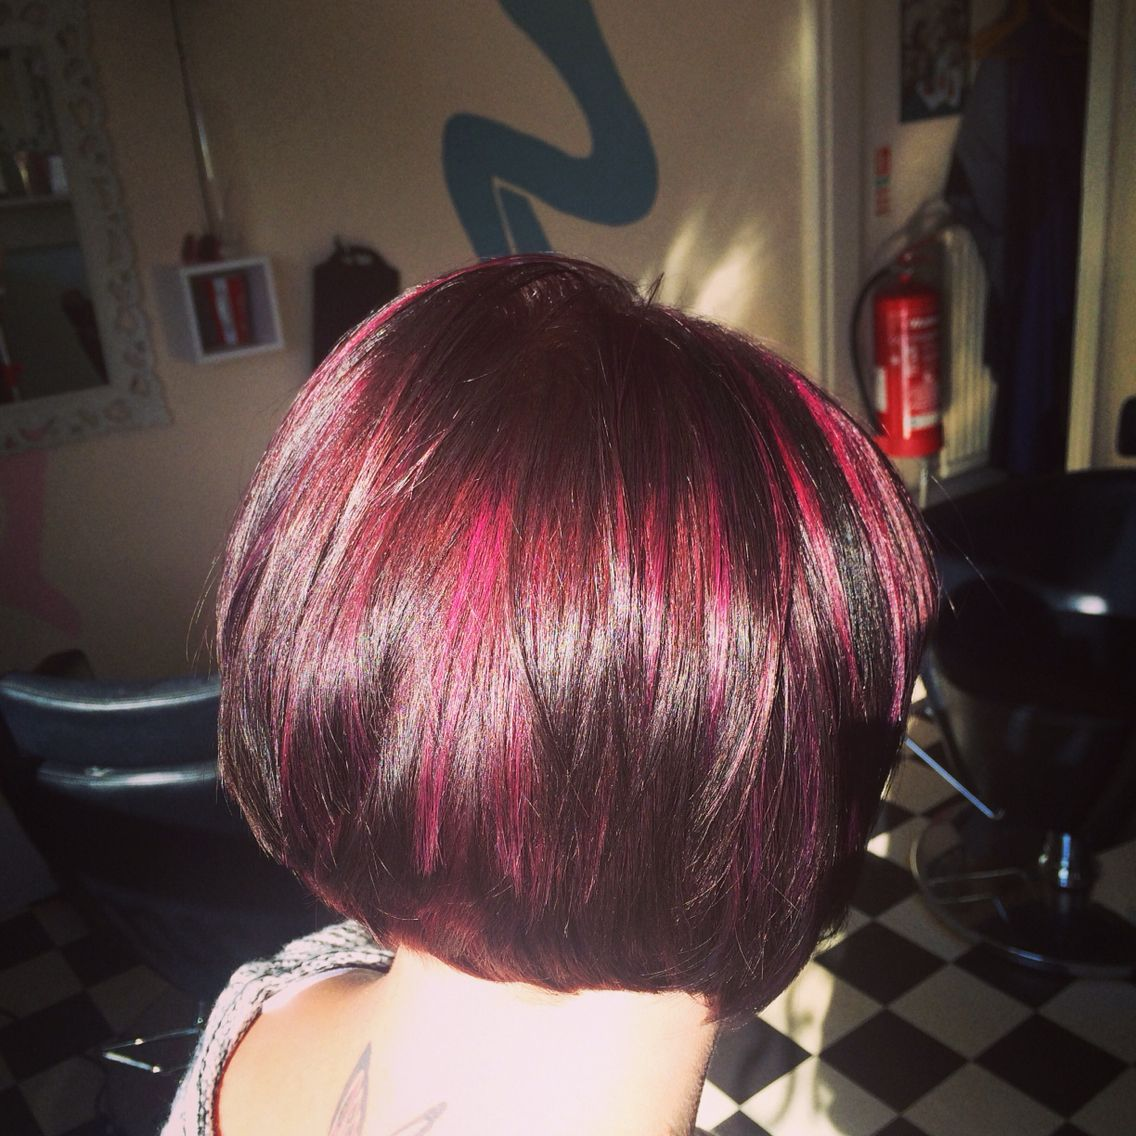 Purple hair deep violet base and mixed violetred slices super